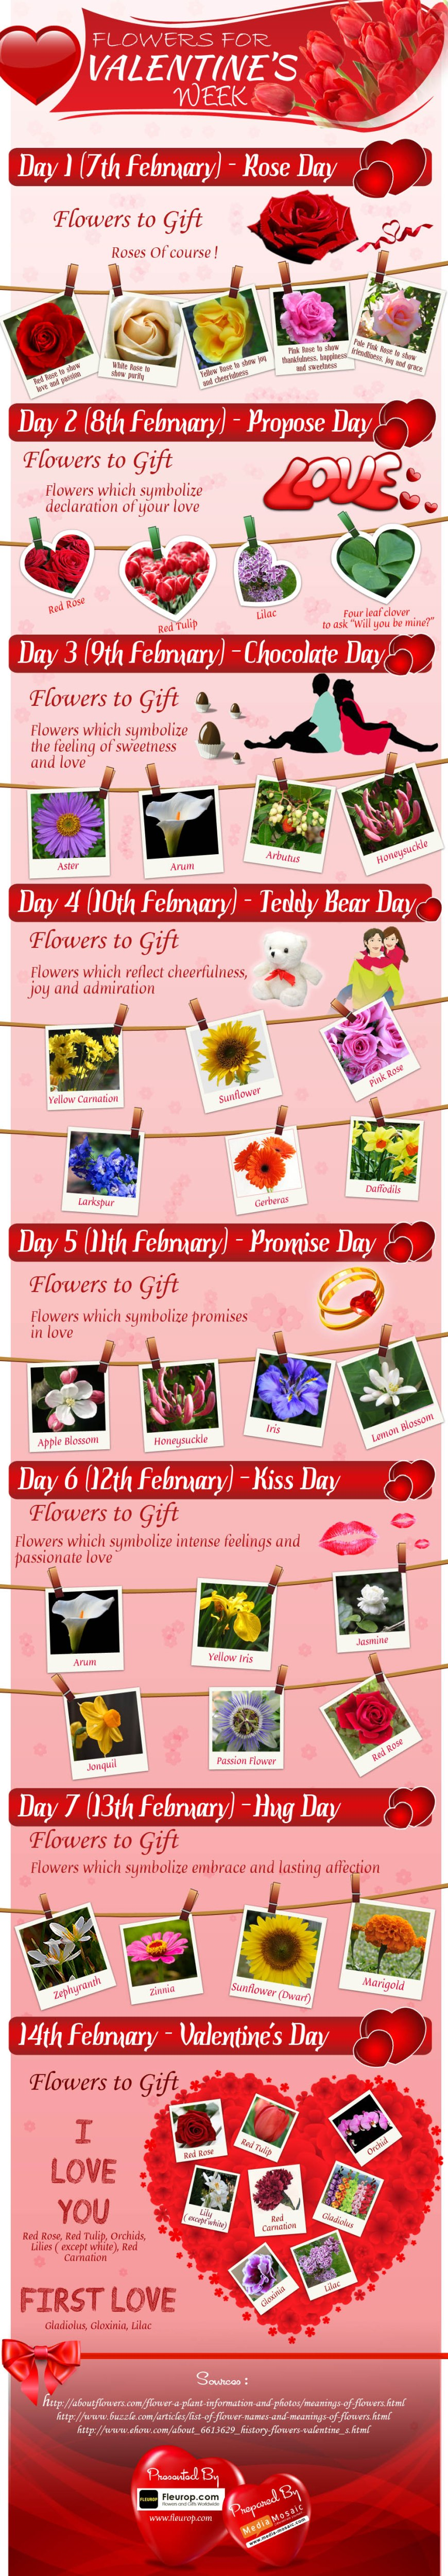 Flowers-For-Valentine's-Week